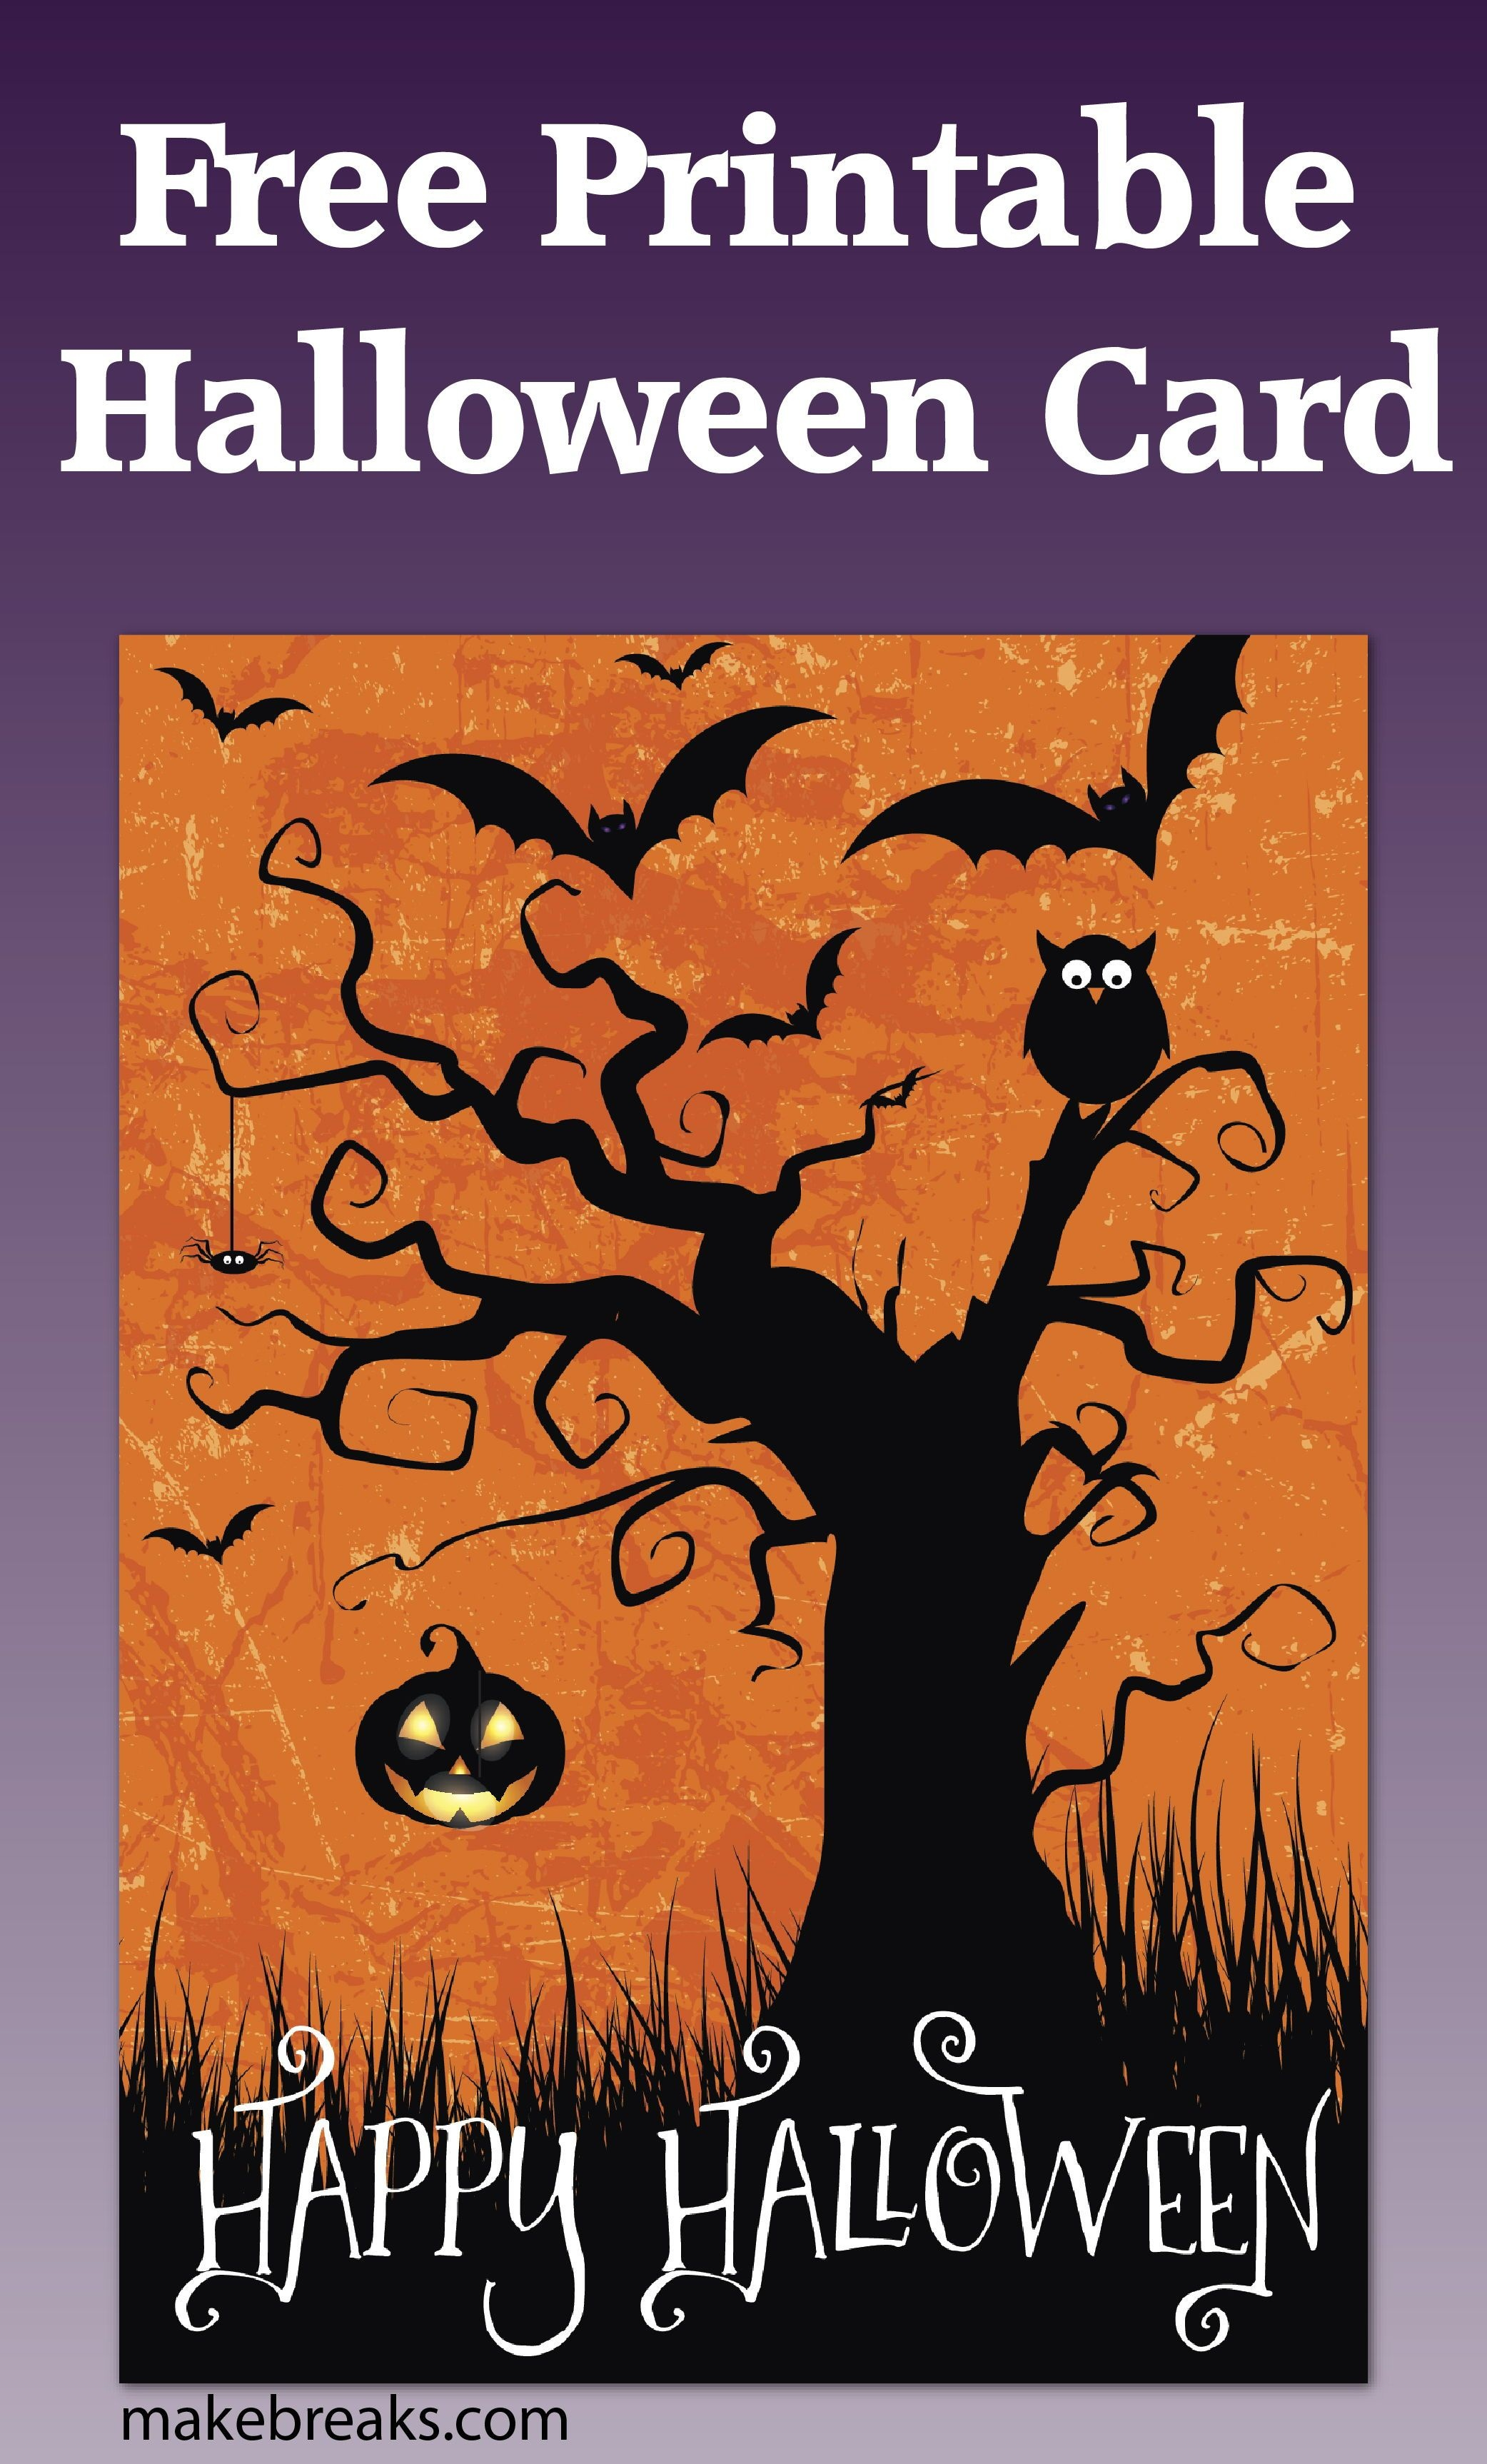 Free Printable Happy Halloween Card Or Party Invitation | Free Party - Printable Halloween Cards To Color For Free